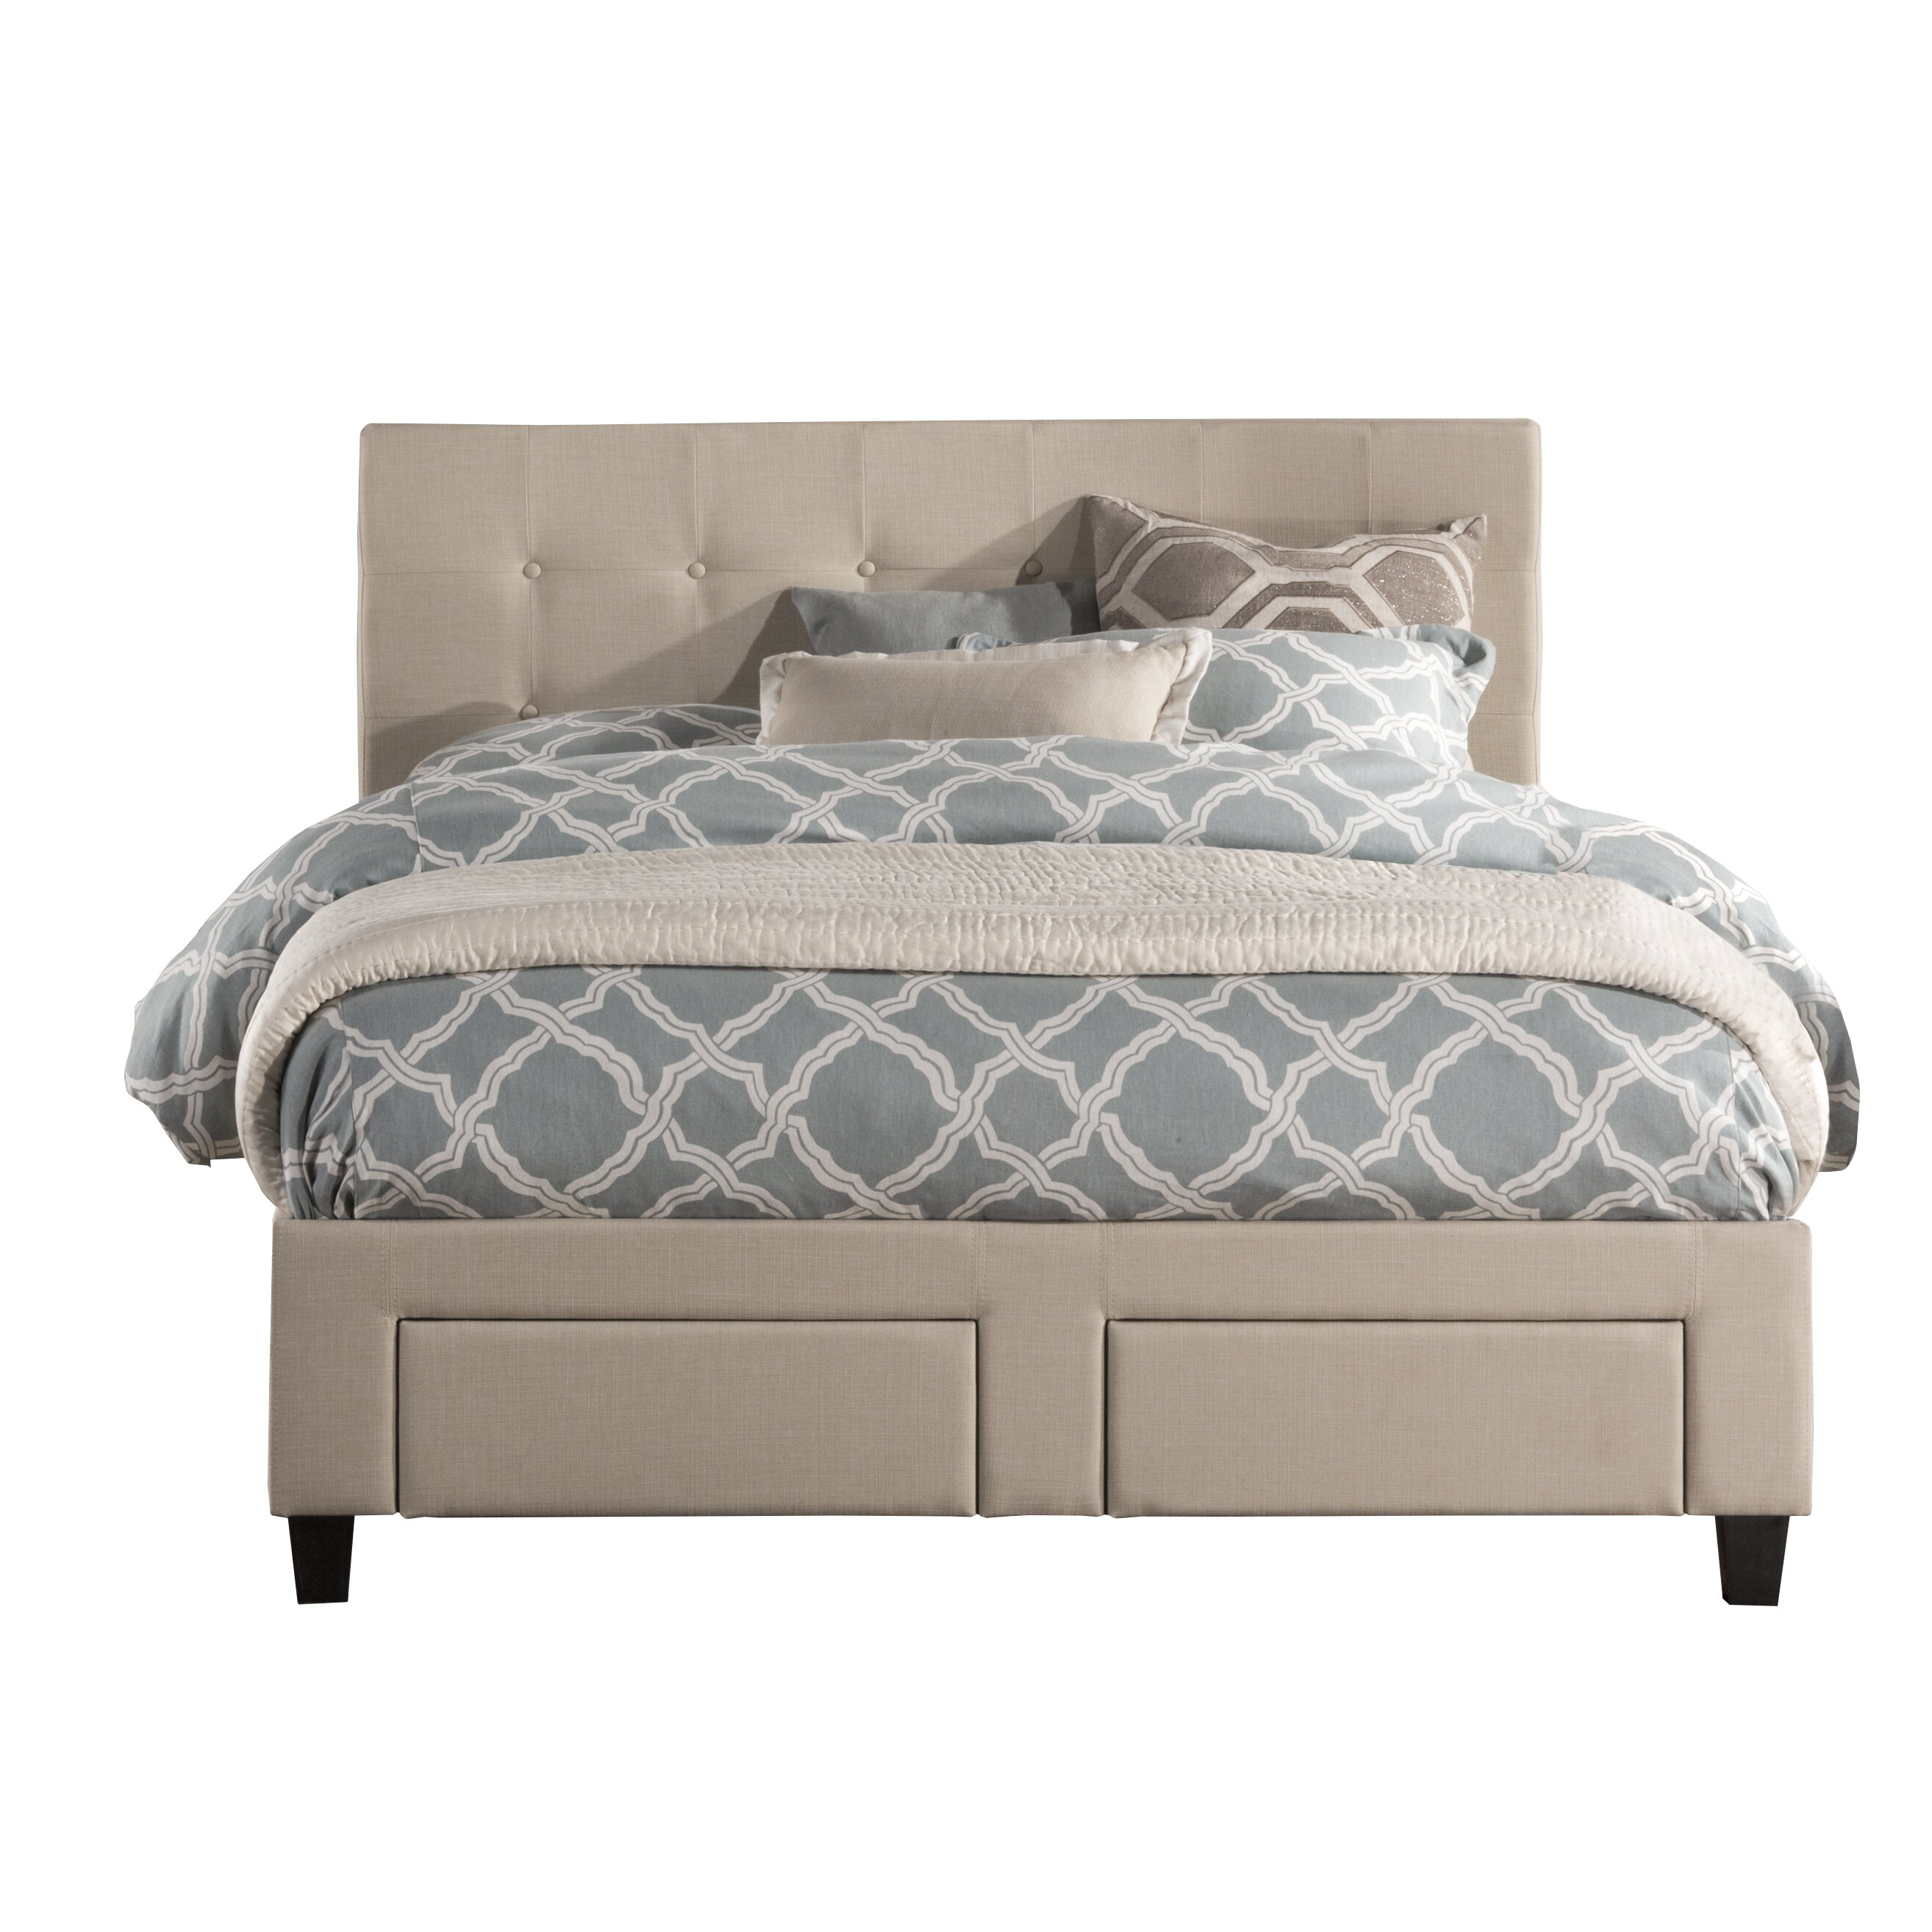 Darby Home Co Hayton Upholstered Storage Platform Bed